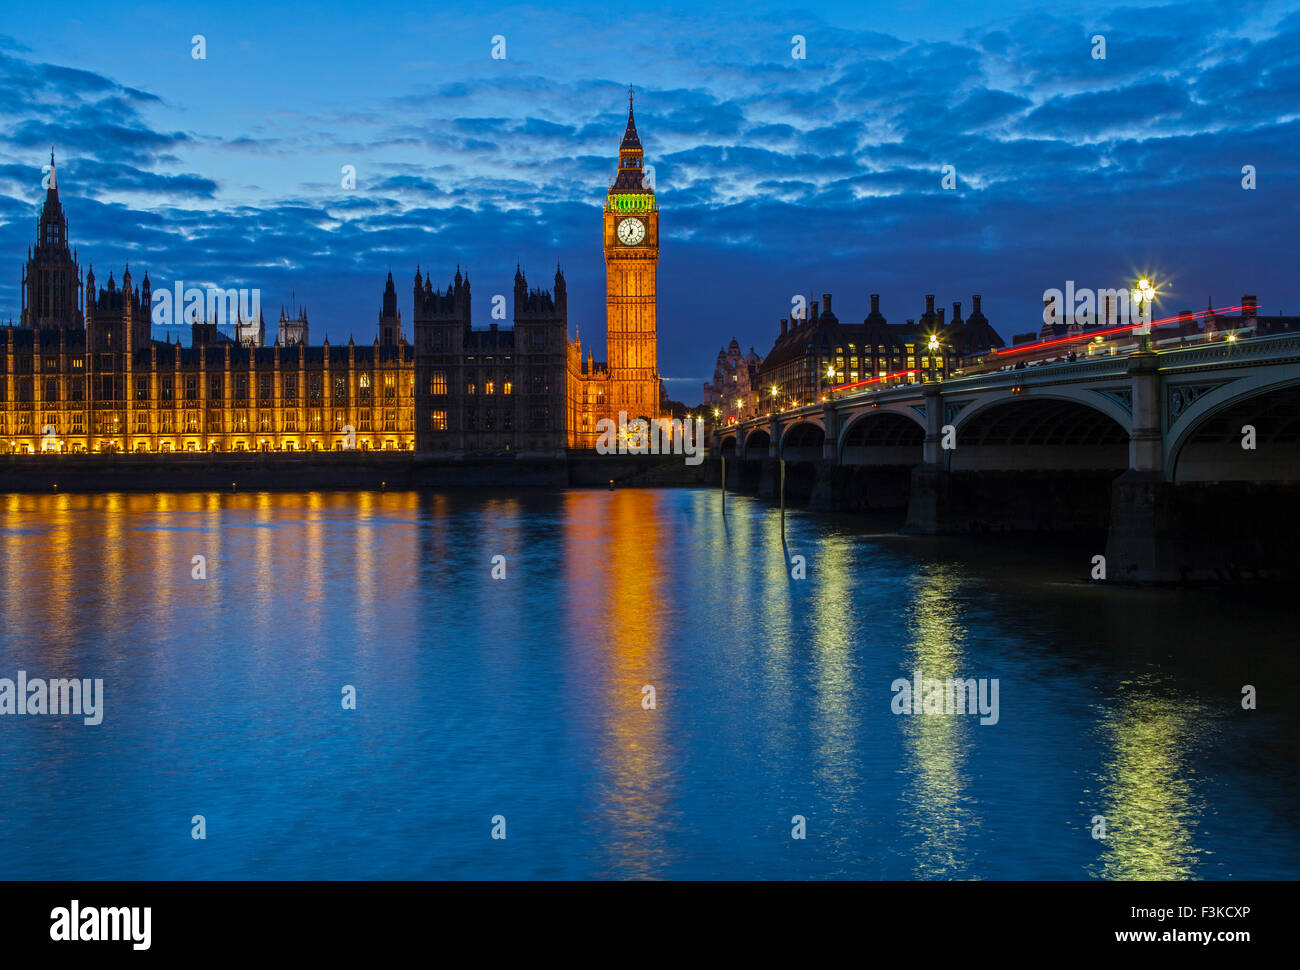 A view across the River Thames of the Houses of Parliament and Westminster Bridge in London. - Stock Image